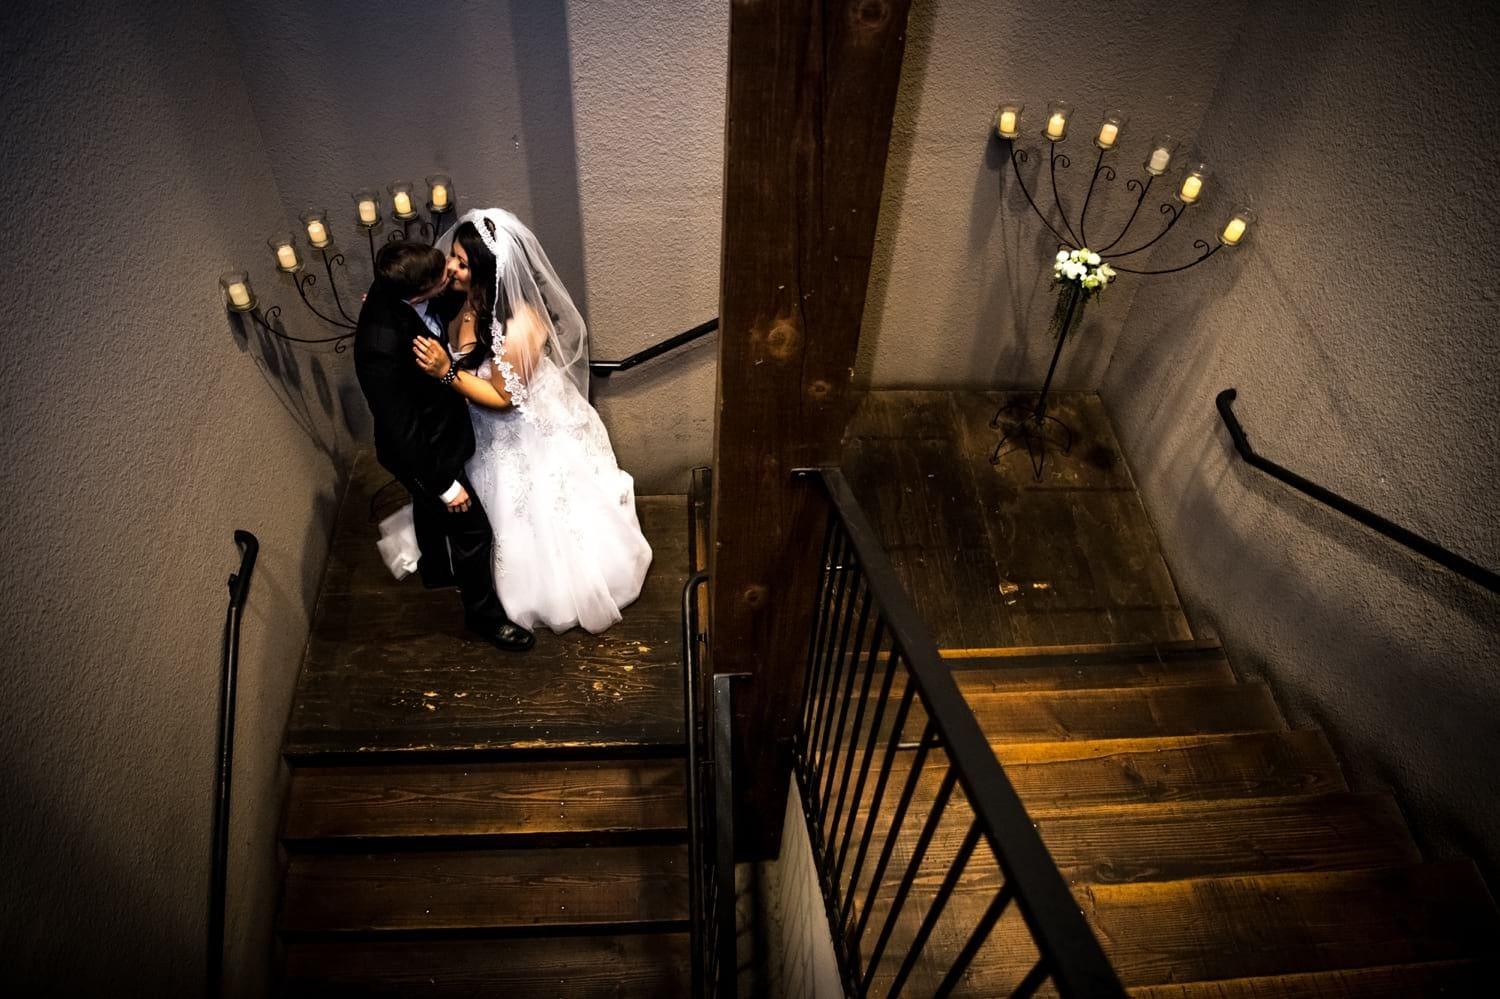 Bride and groom kissing on a staircase.